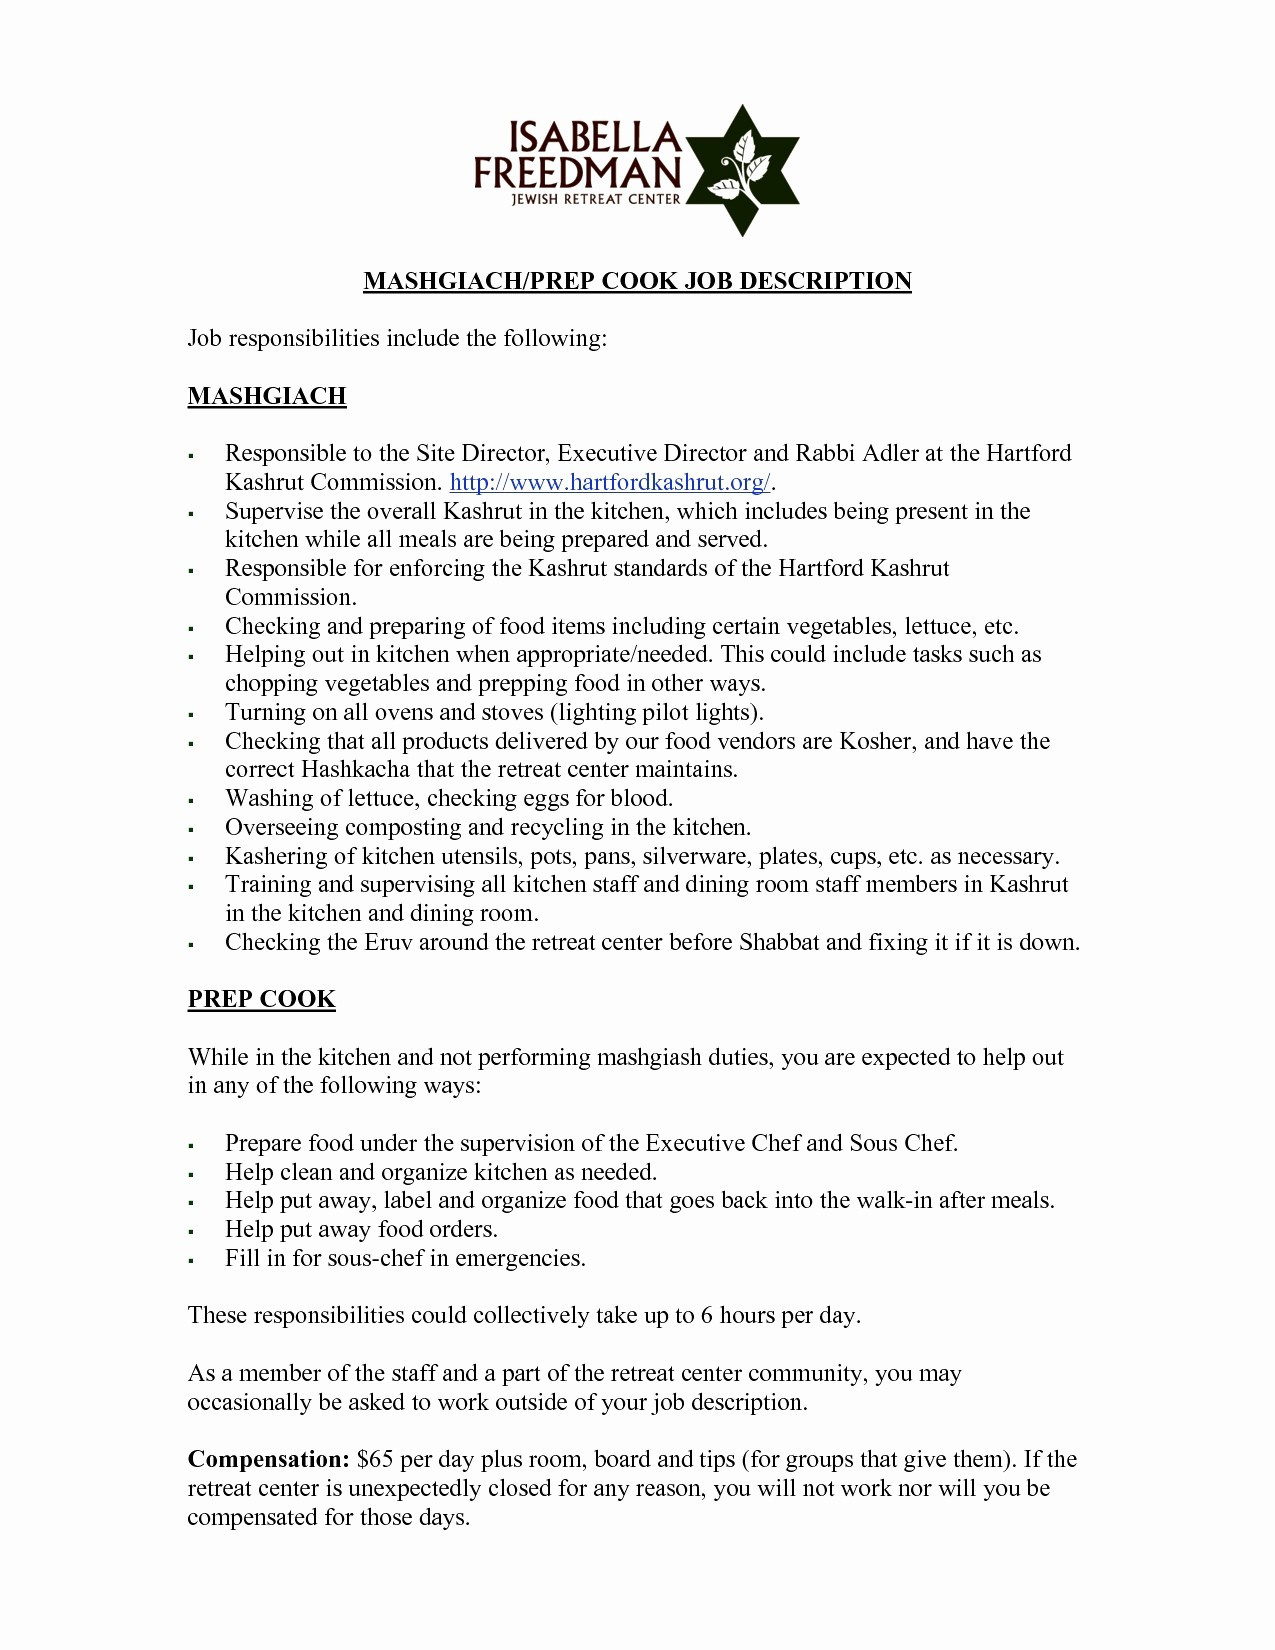 Lawn Service Resume - Customer Service Executive Job Description Resume Reference Resume